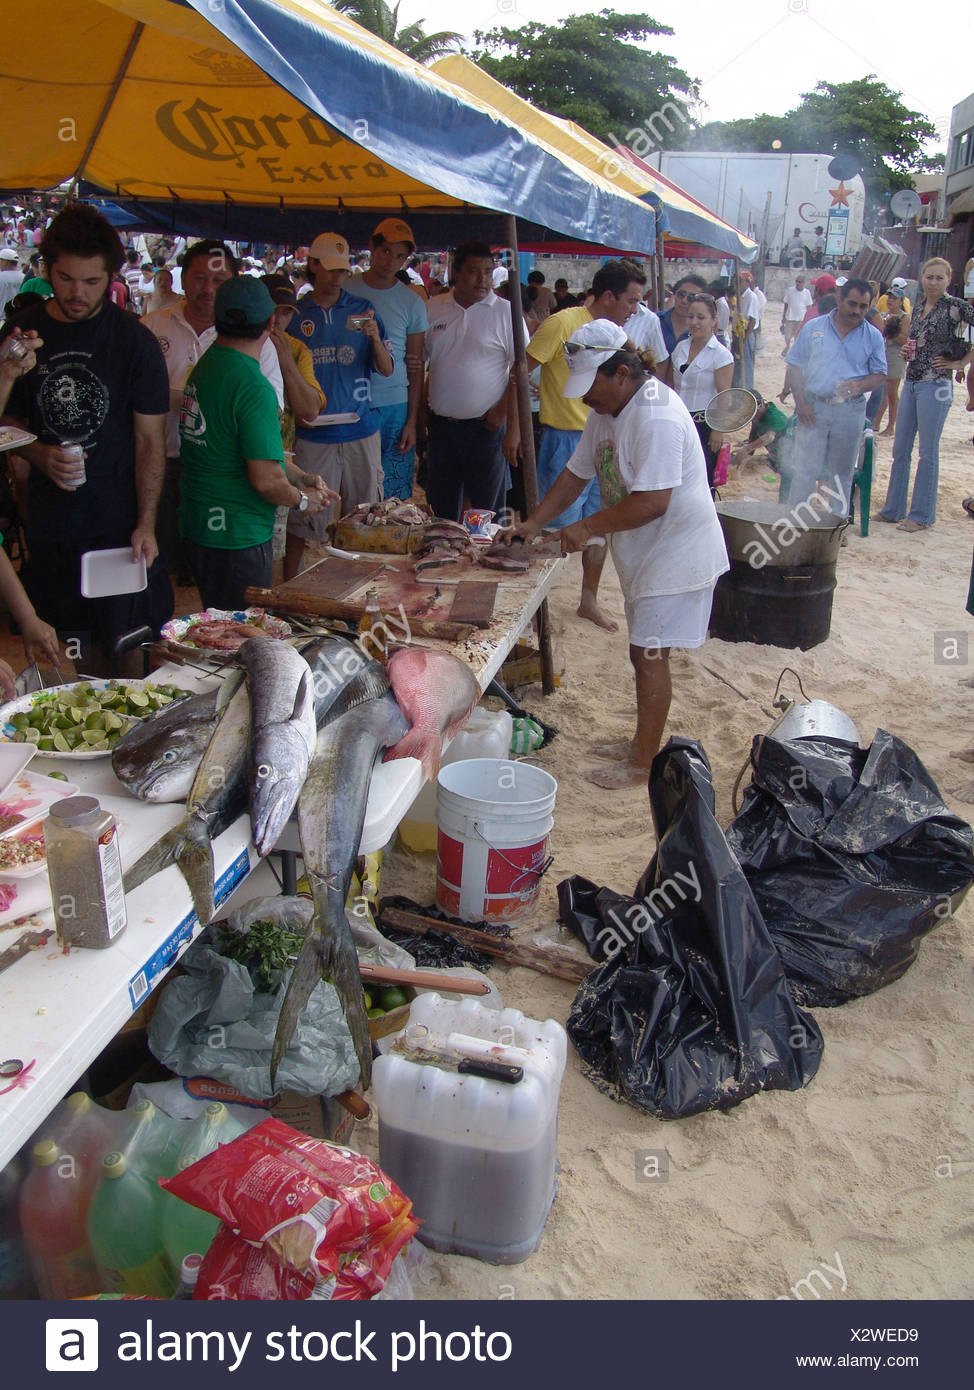 Mexico Yucatan fisher-party Central America people party event celebrates fishers natives enjoyments sociability Mexicans - Stock Image